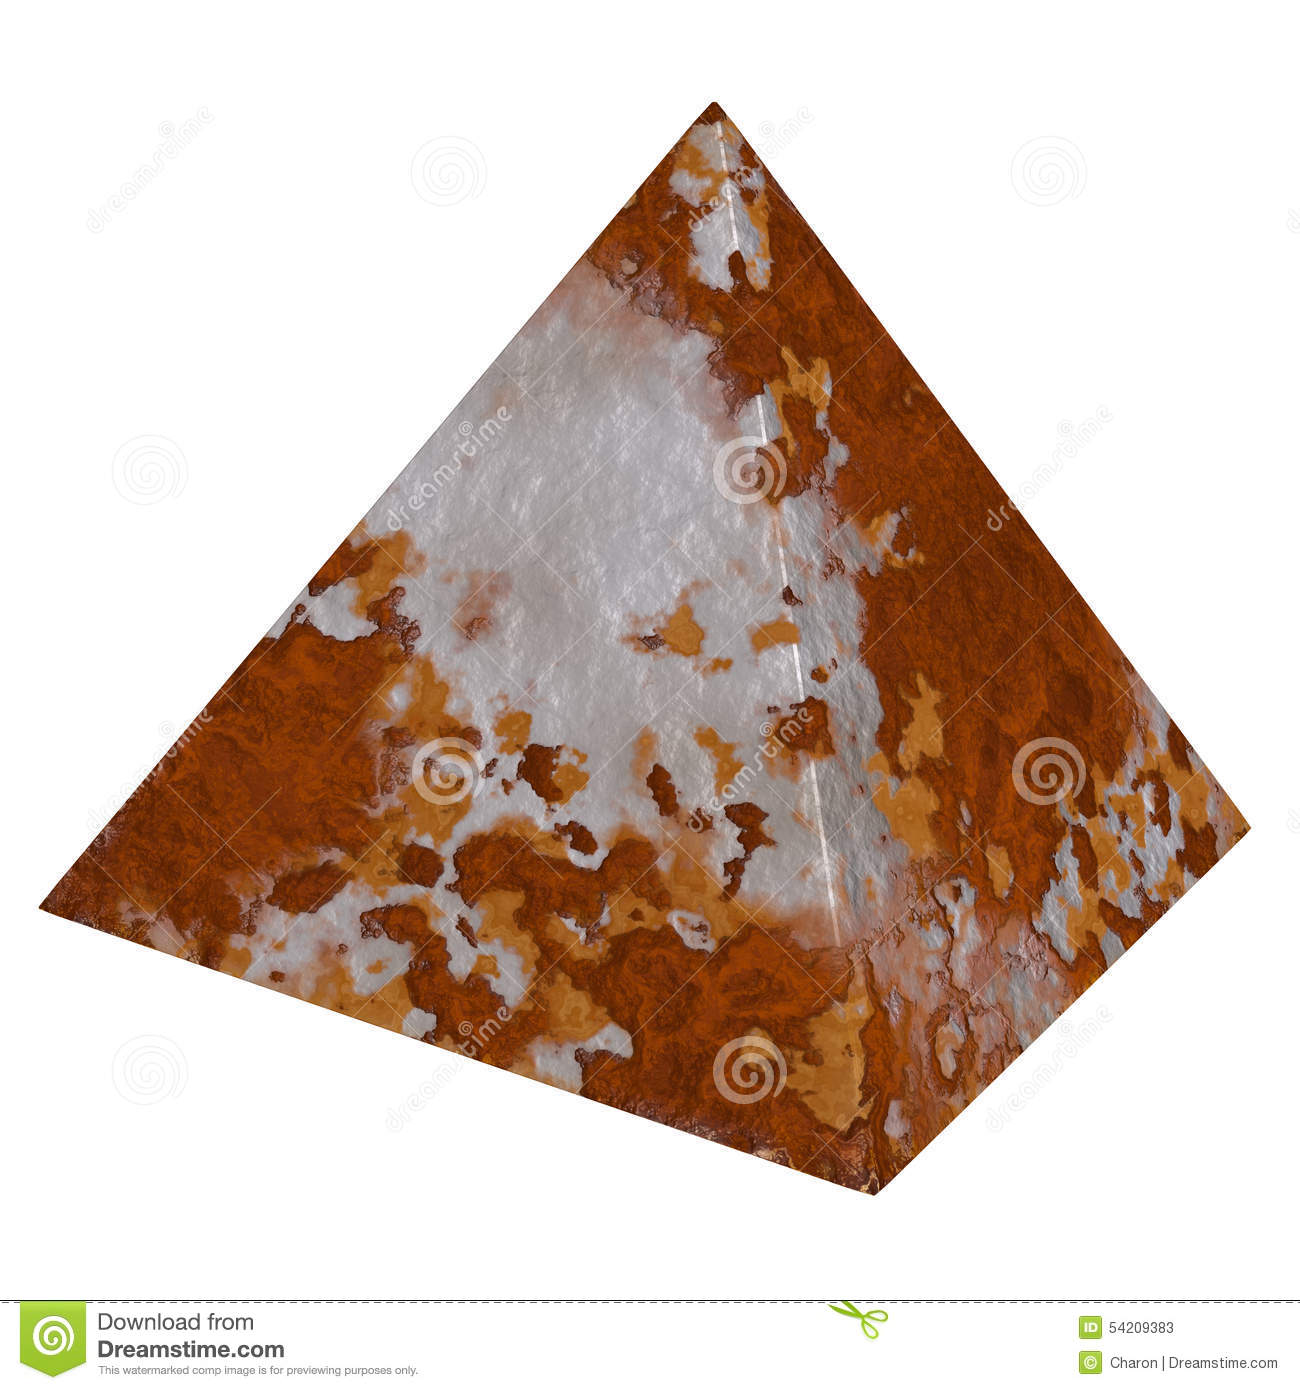 Rust Pyramid Rustic Metal Textures Stock Photo.